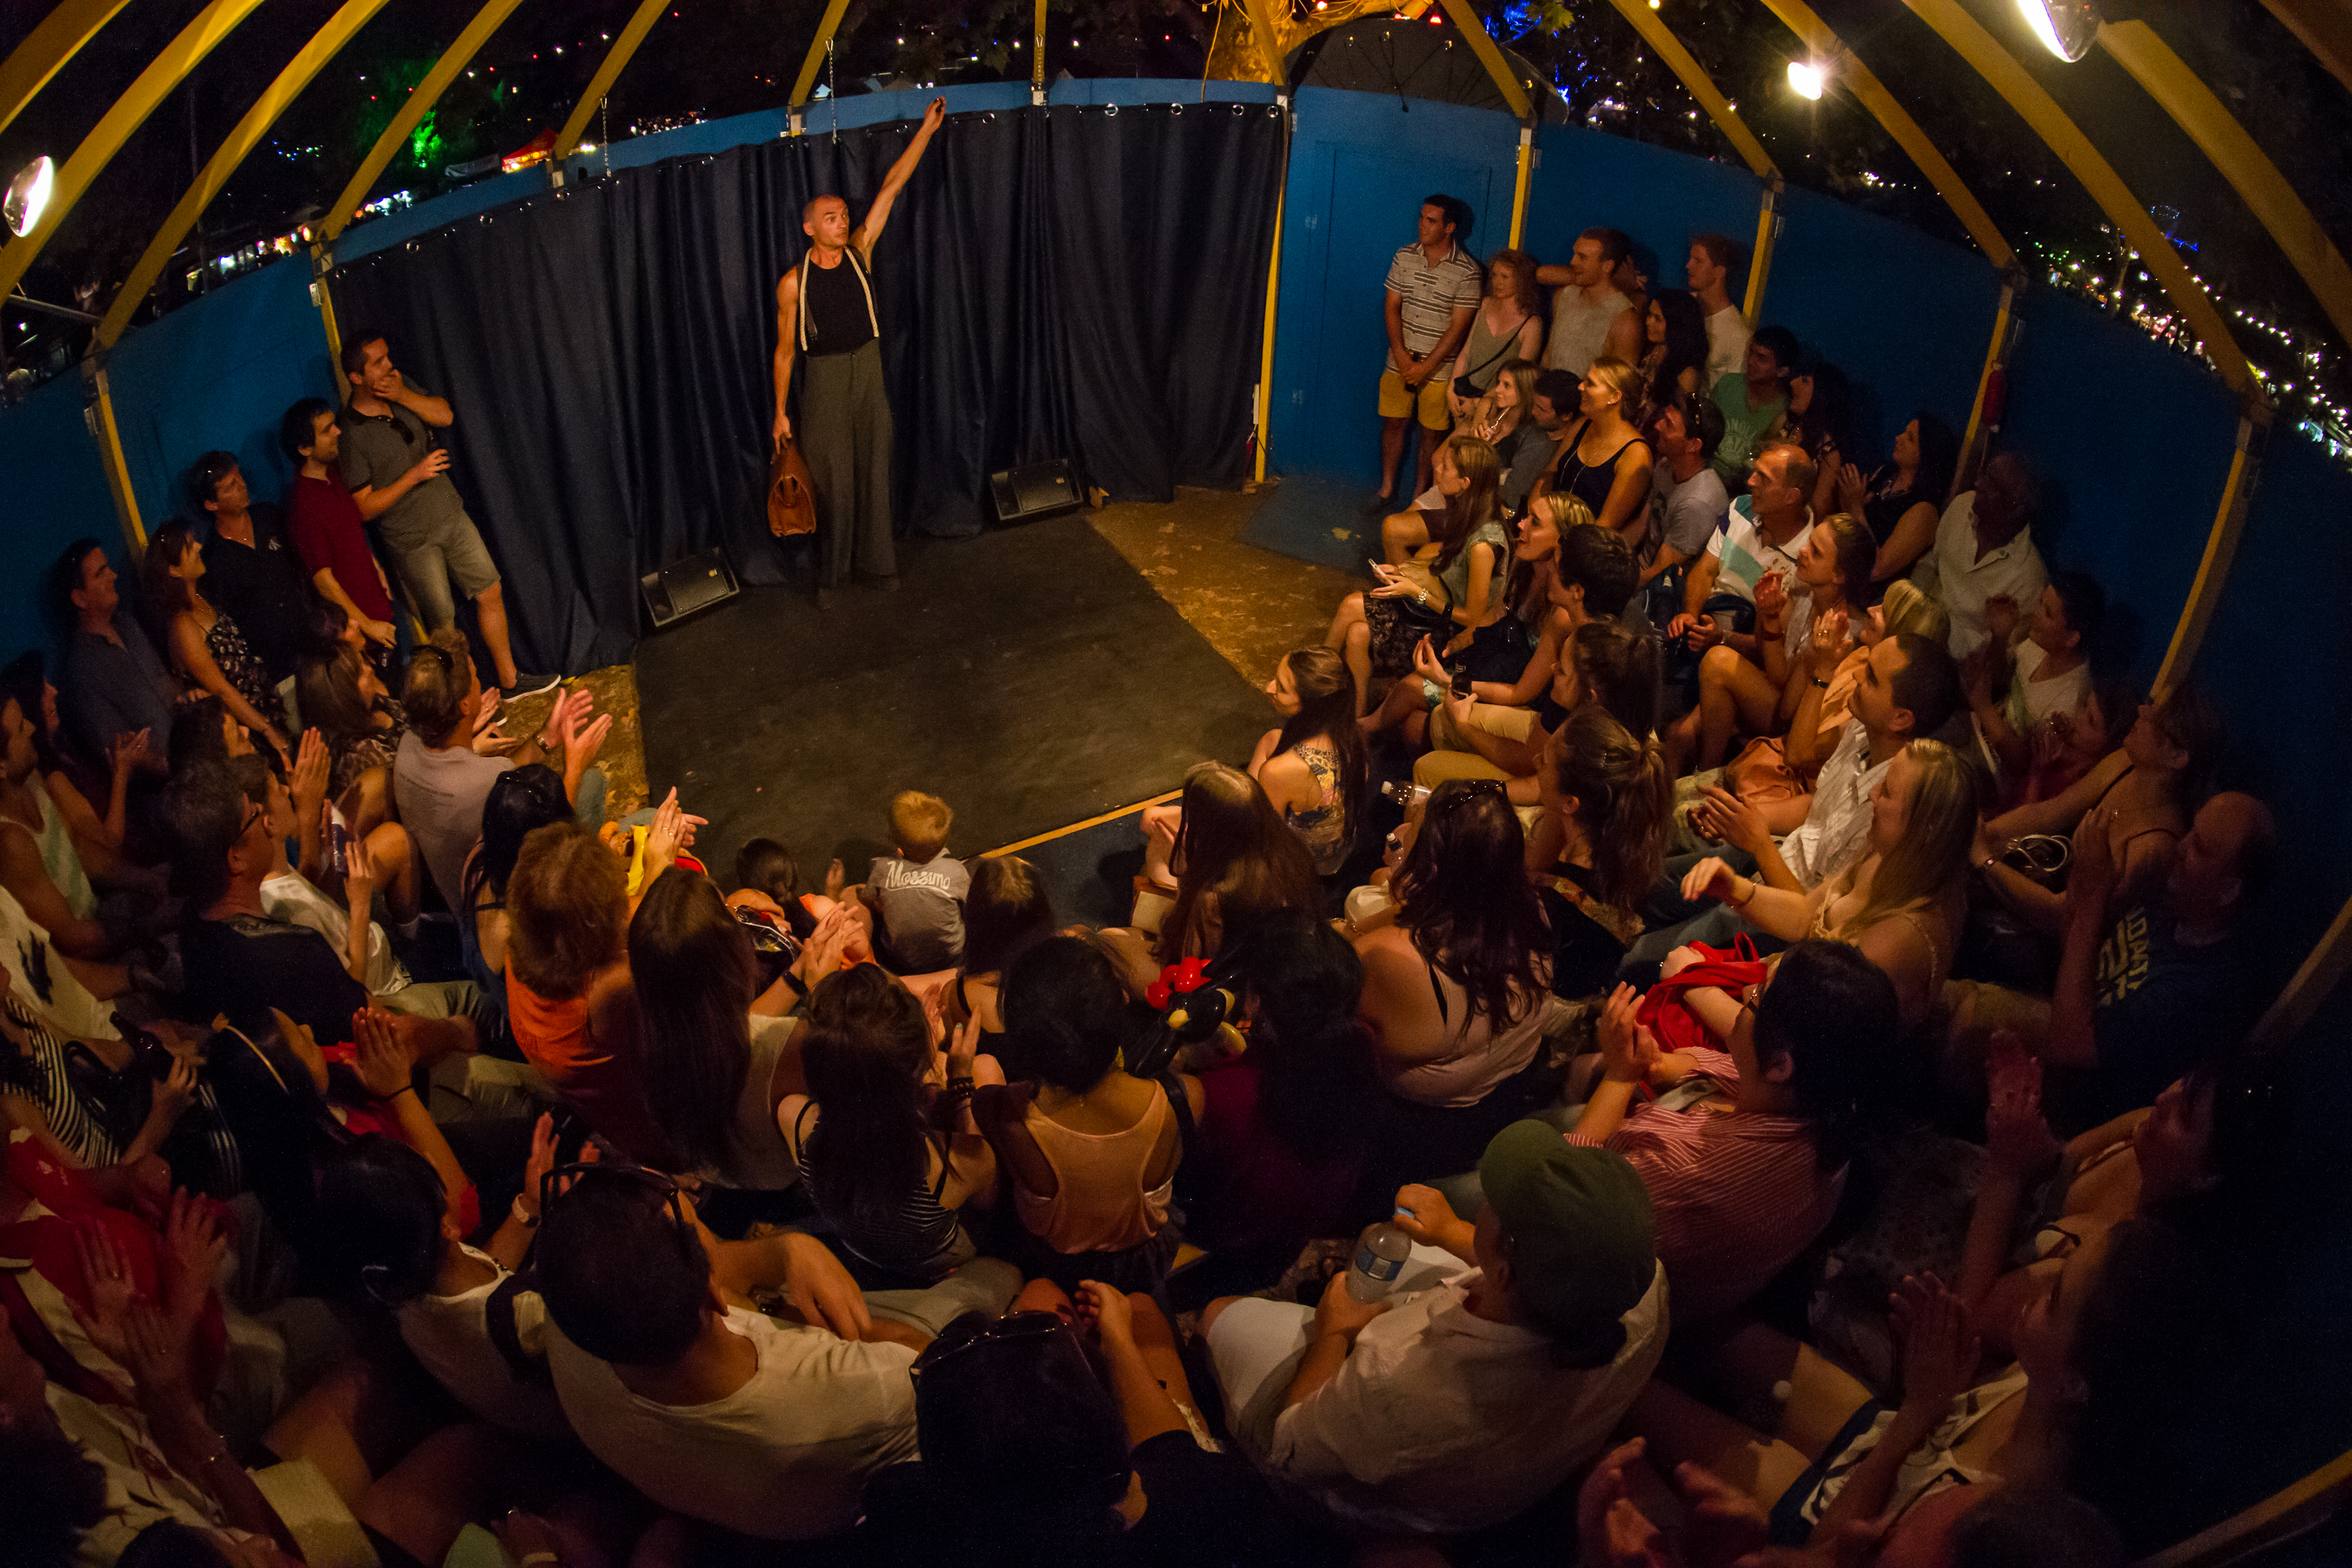 Circus performer on stage, surrounded by the audience, inside a big top tent.